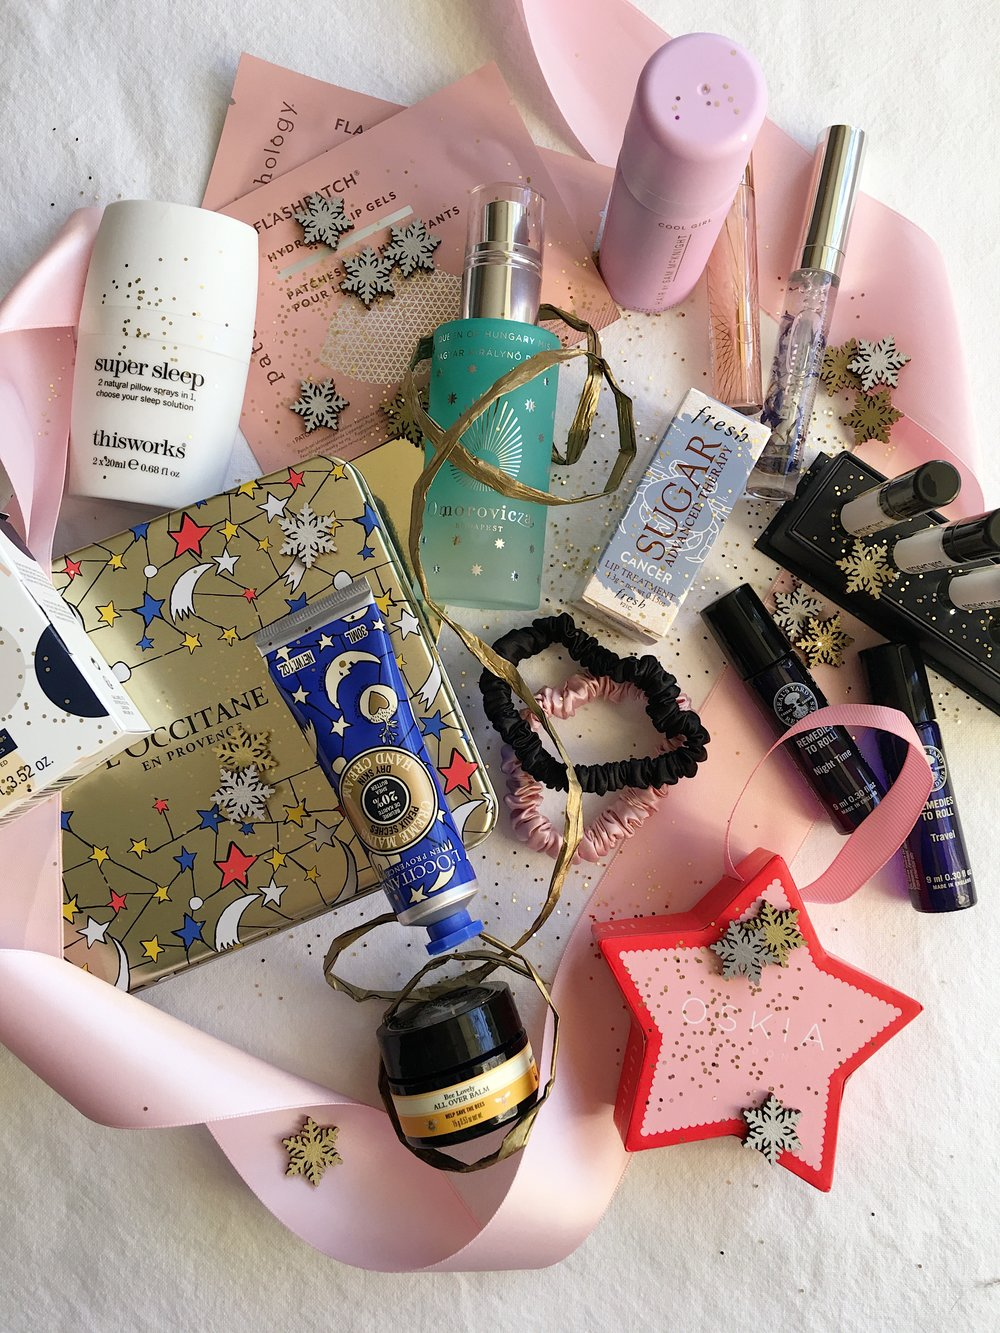 AMOUR OPHELIA - STOCKING FILLER BEAUTY GIFT GUIDE